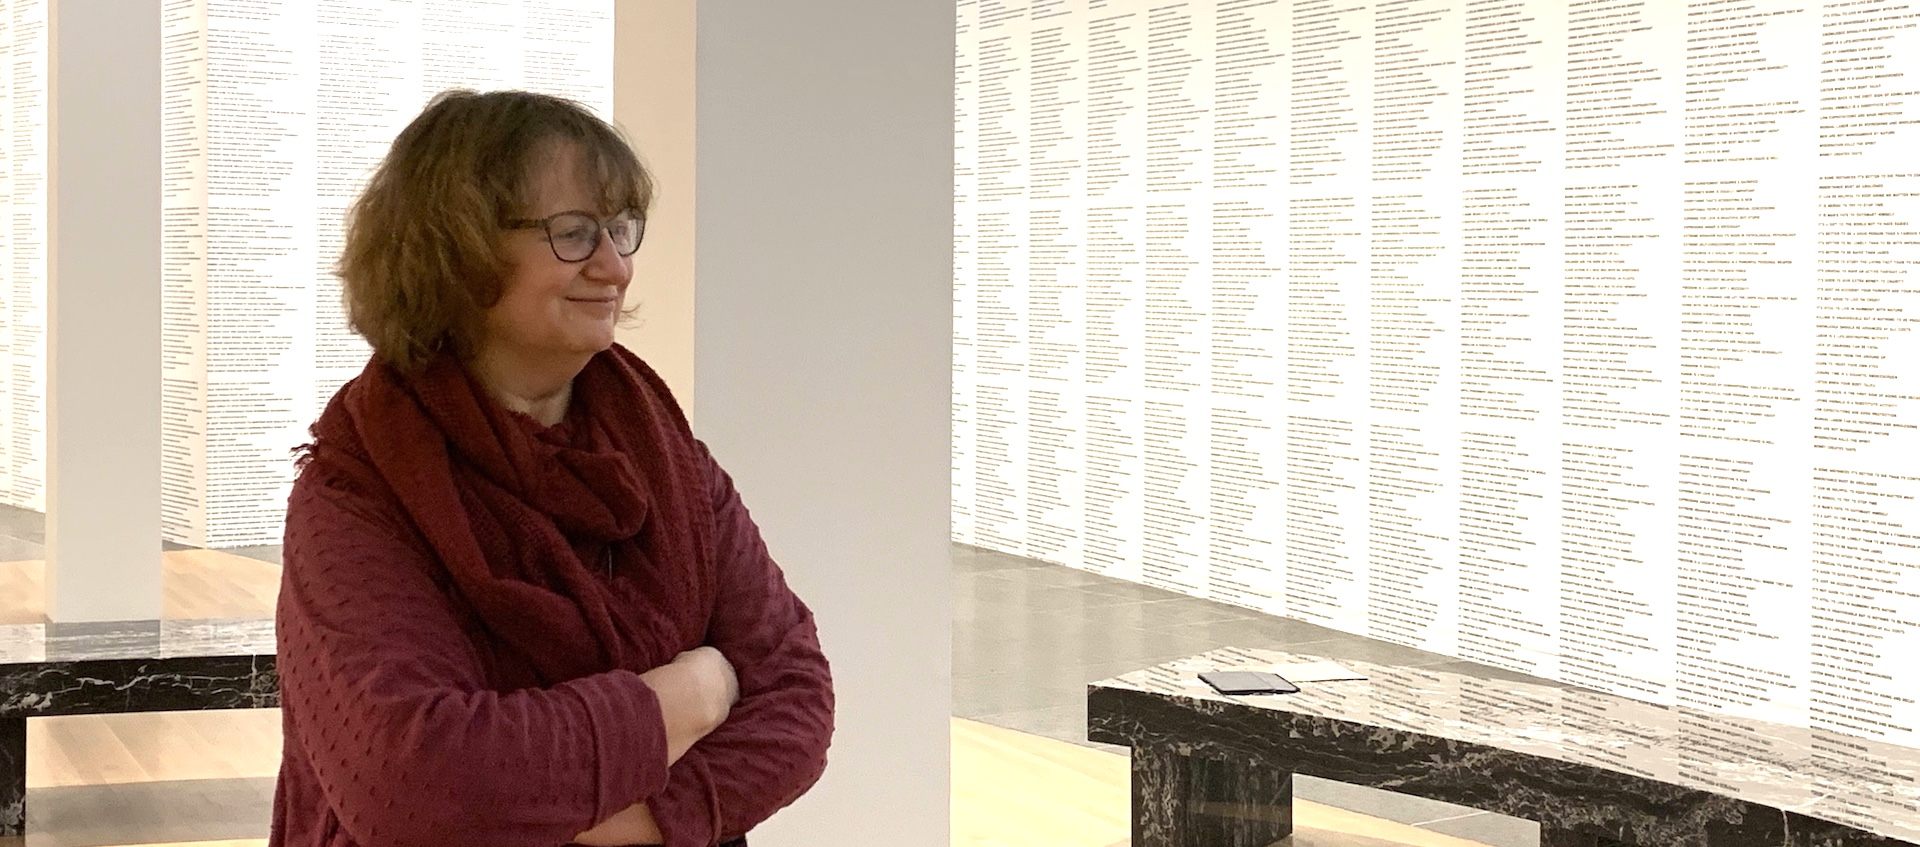 Ohio State professor of English Elizabeth Weiser stands with her arms folded in a gallery covered floor to ceiling with text by artist Jenny Holzer during a gallery talk at the Wexner Center for the Arts